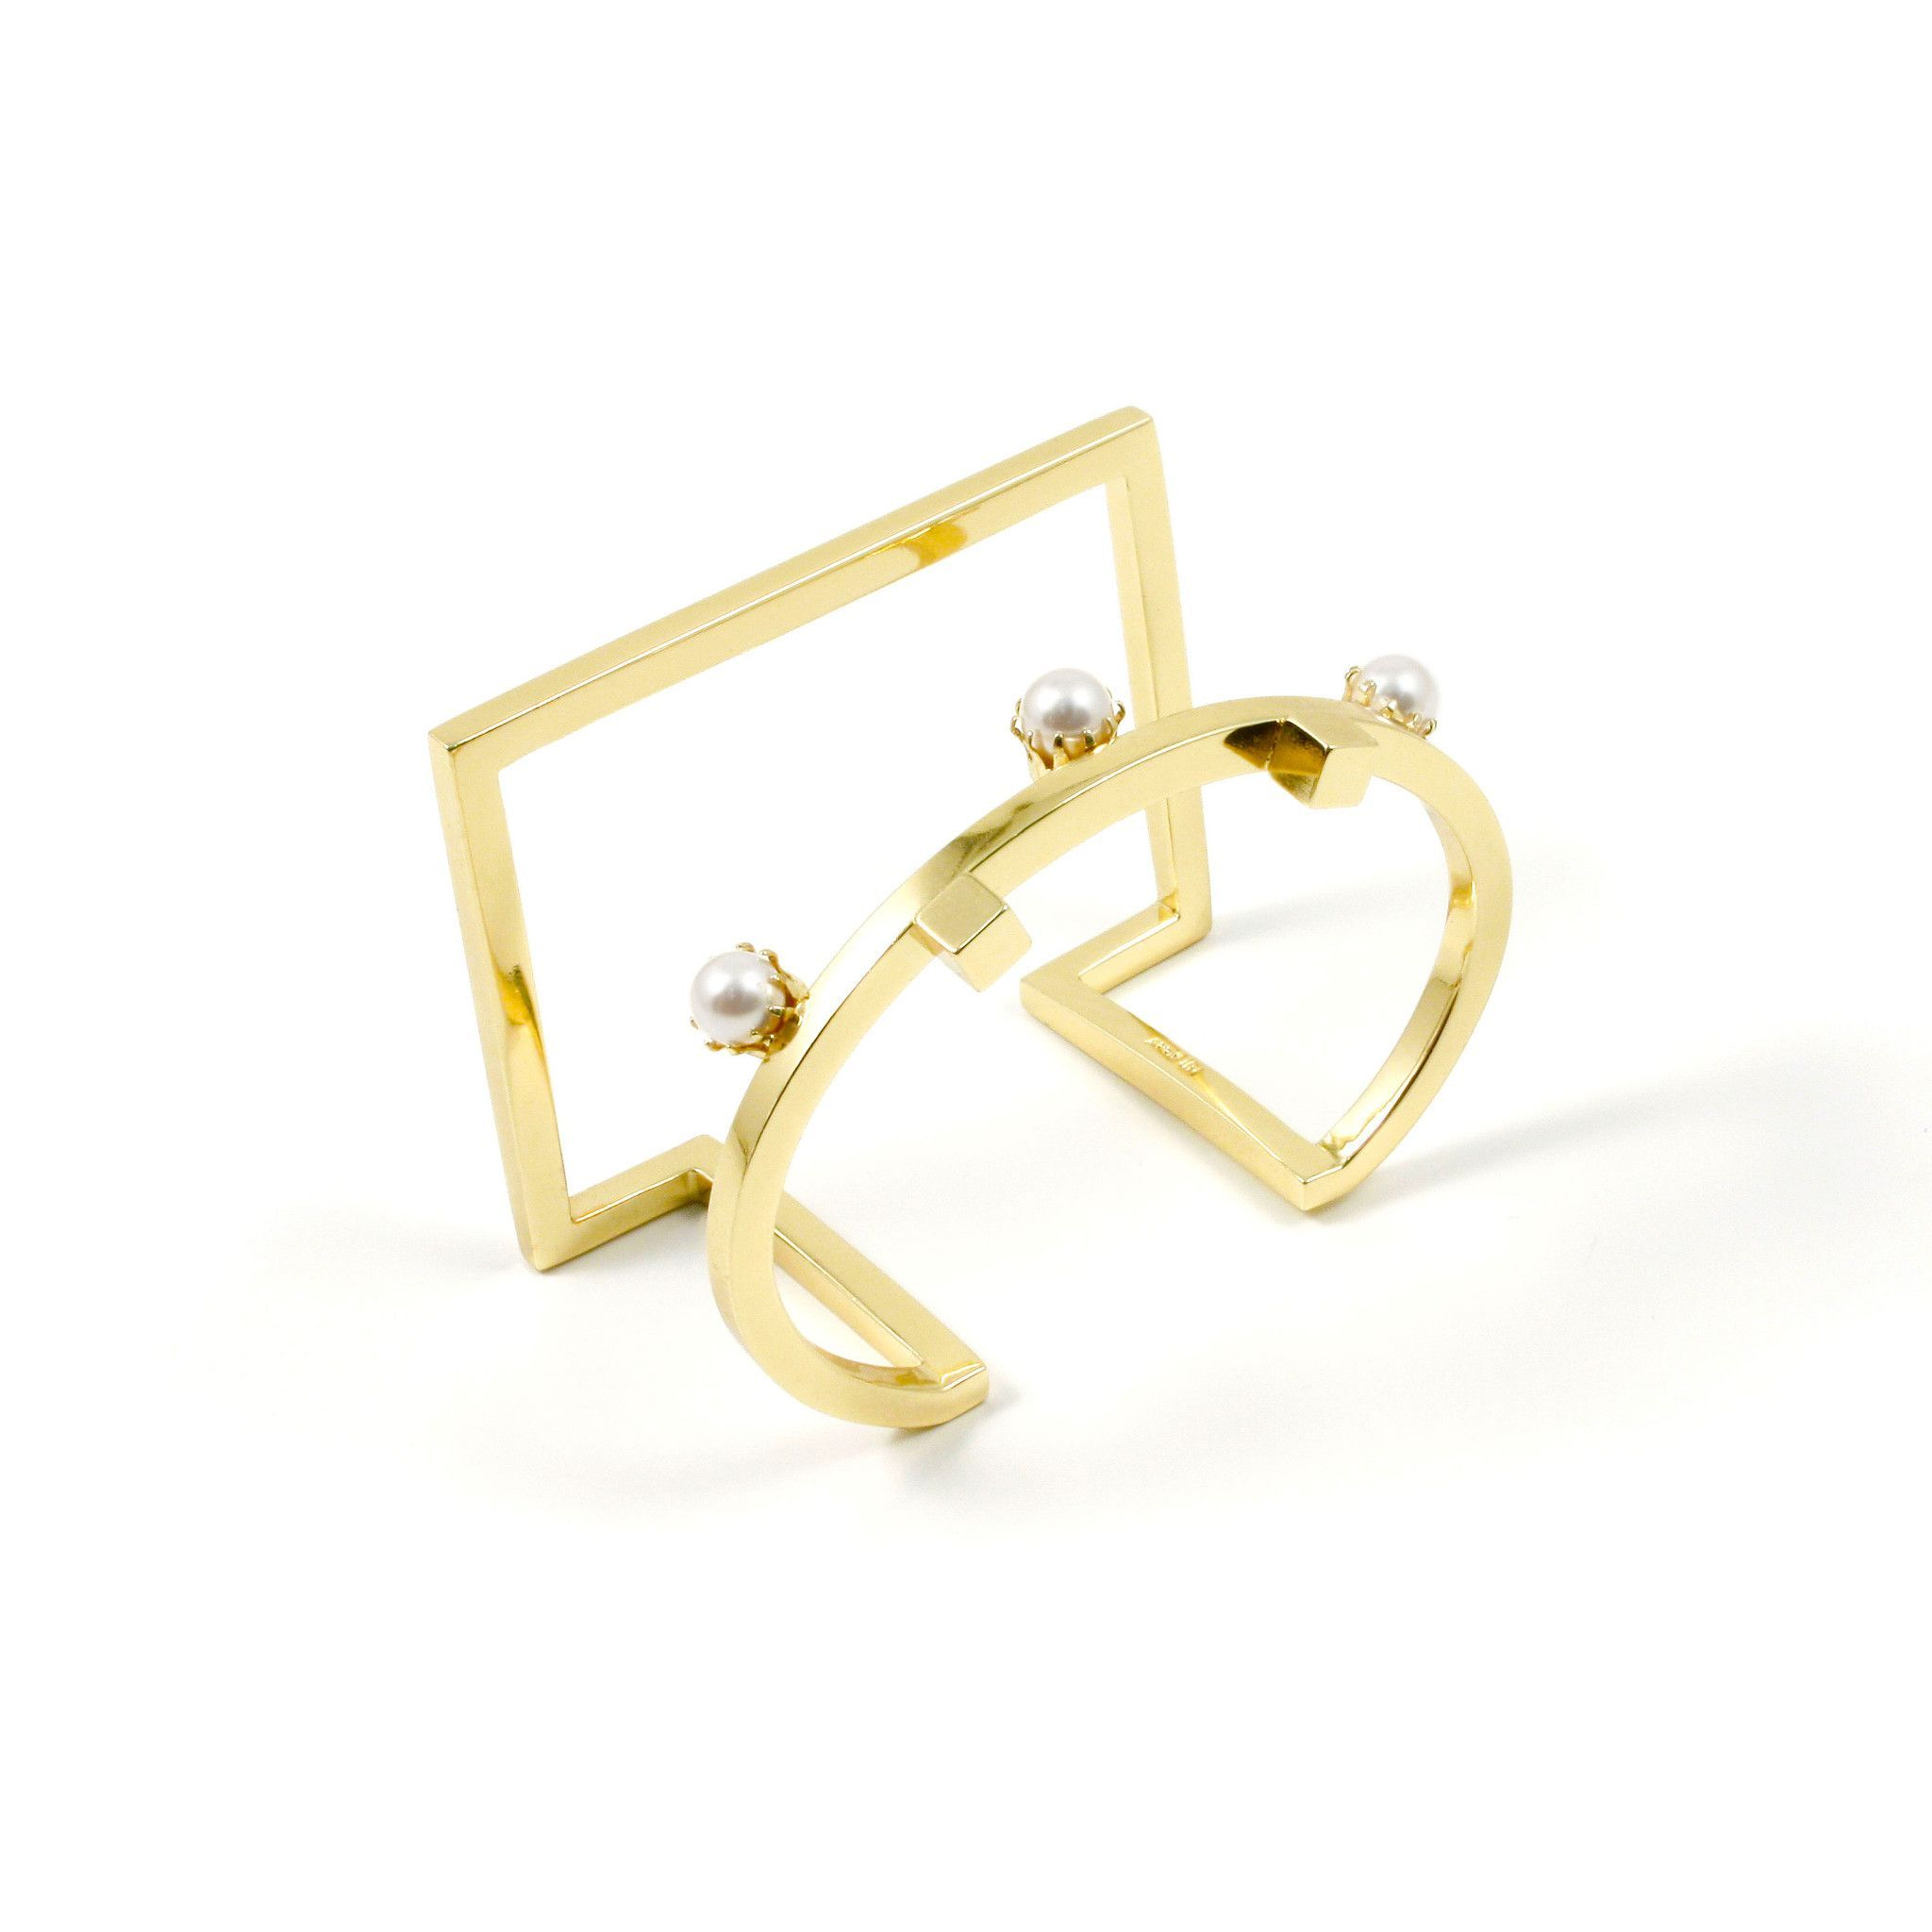 Shape Shifter Round & Square Cuff W/ Cubes & Pearls